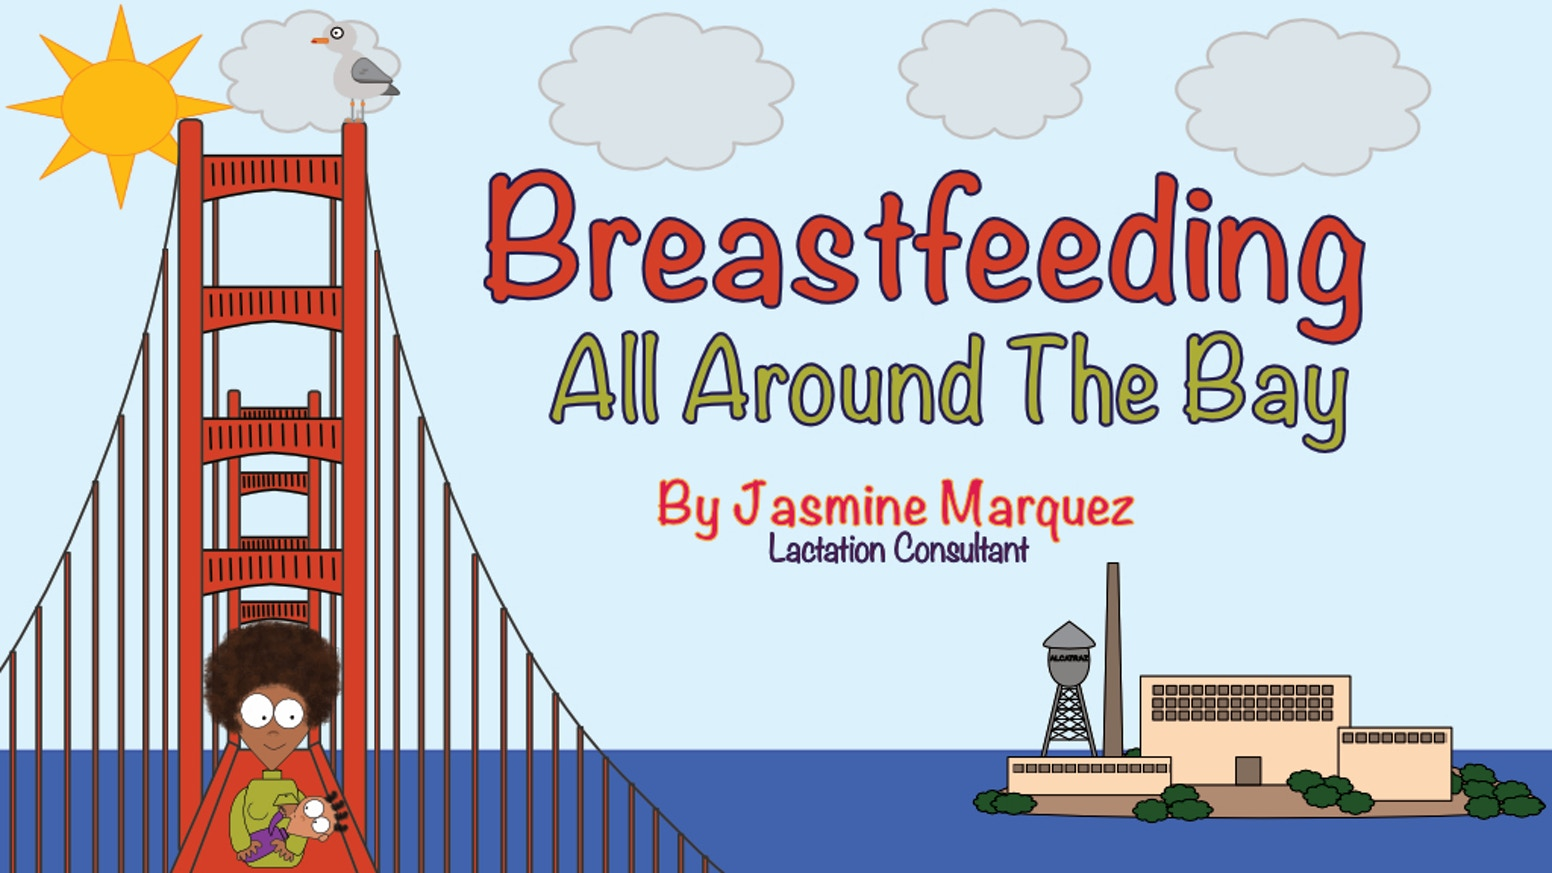 Clever rhymes and colorful illustrations help normalize breastfeeding for future generations. Set in the San Francisco Bay Area.